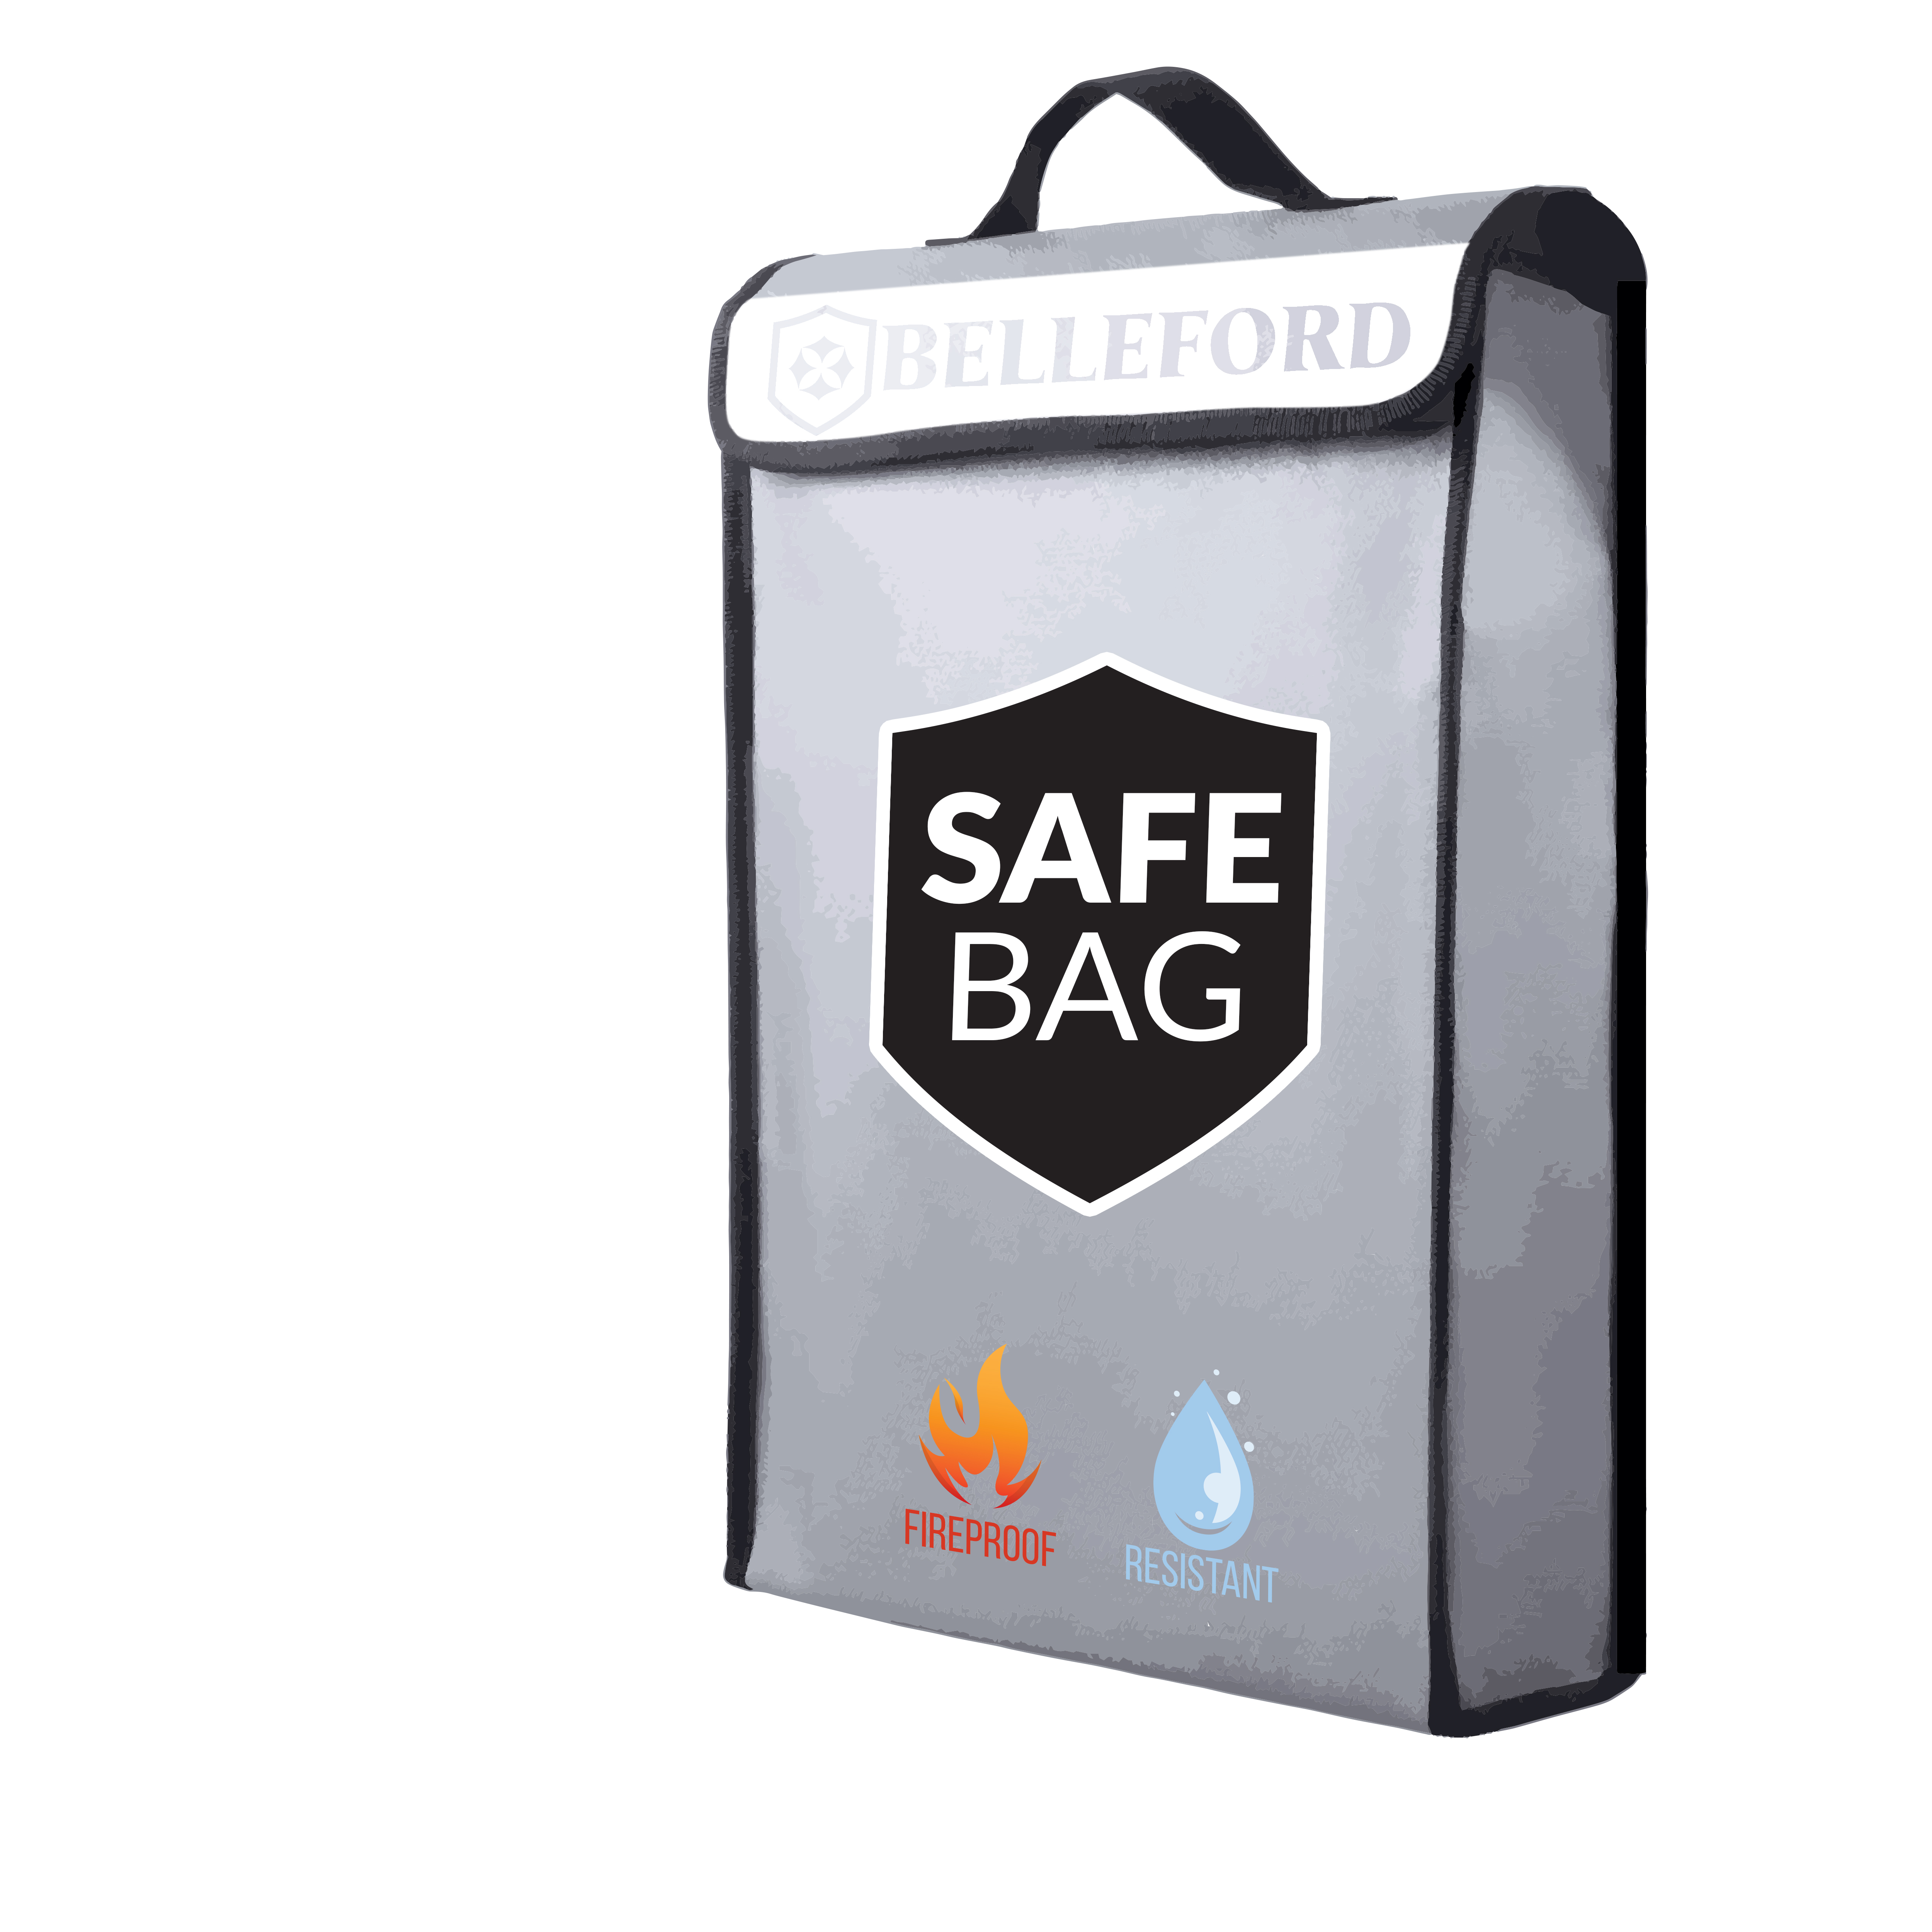 Safe bag for Money LiPo Battery Fire Resistant Document Bag for lpad,Cash,Documents.Jewelry and Passport